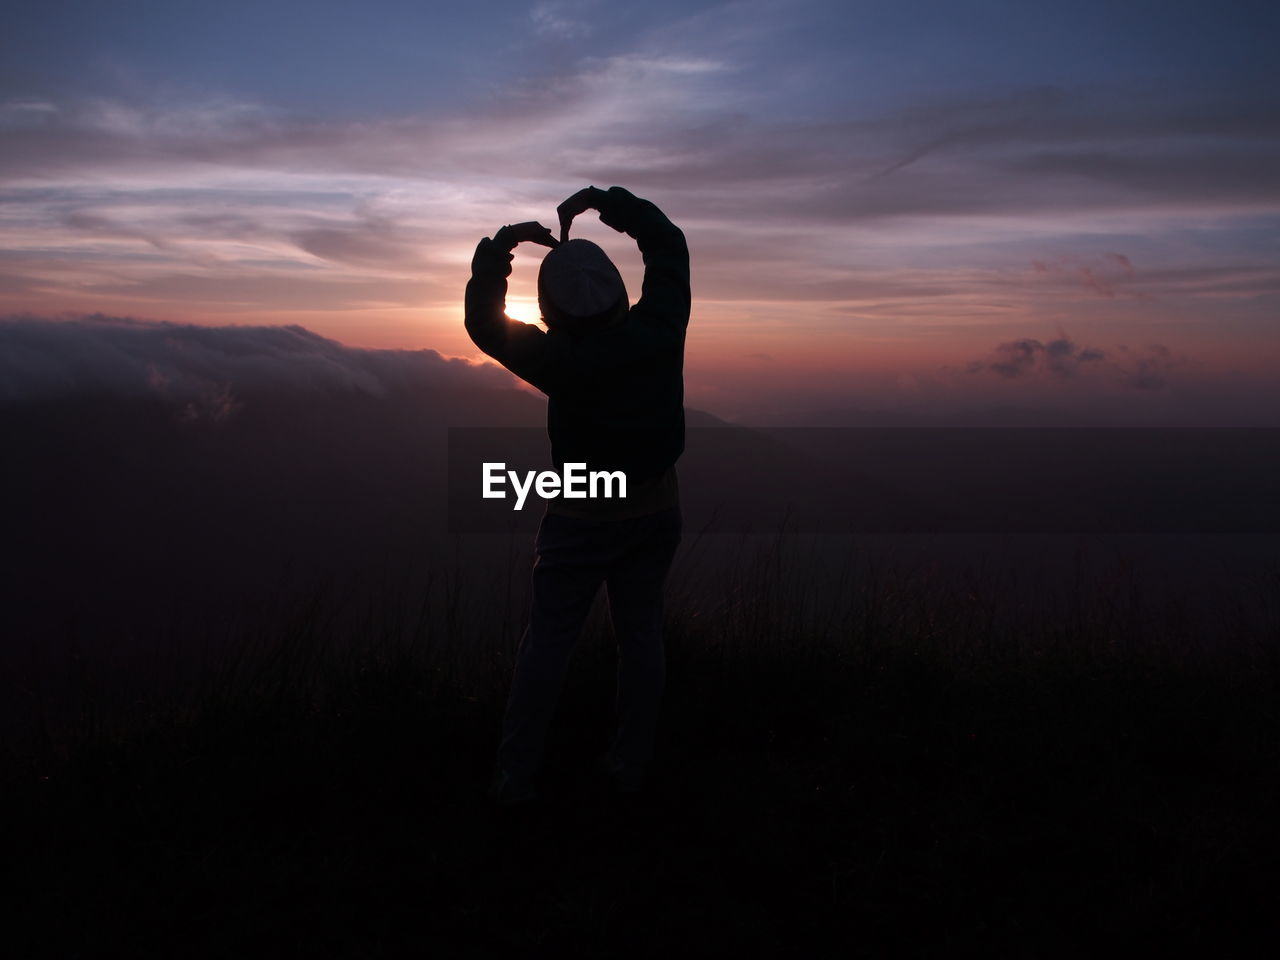 Silhouette woman making heart shape on mountain during sunset